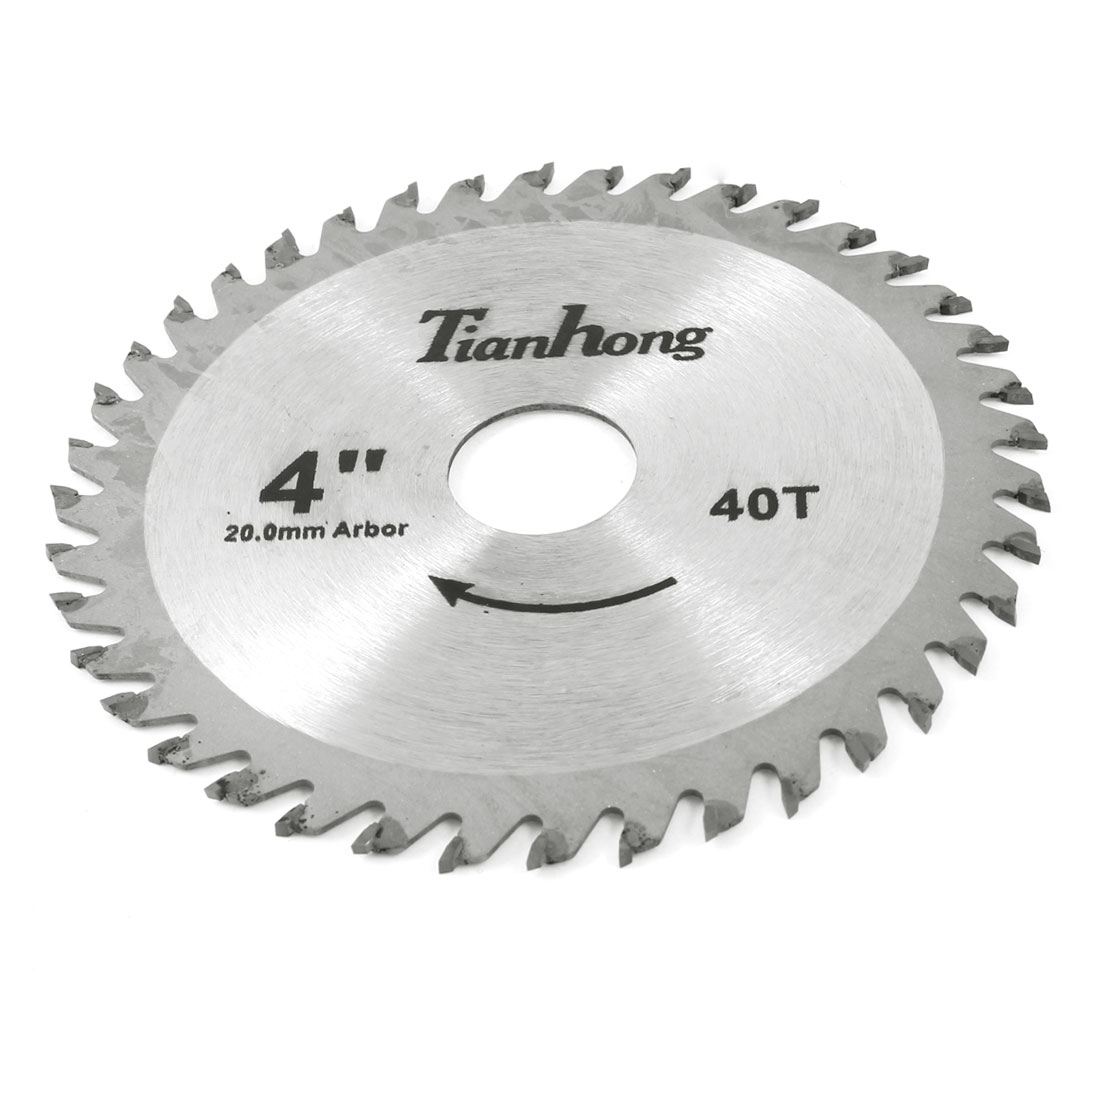 Silver Tone Steel 40 Teeth 105mm Cutting Dia Saw Blade for Carpentry